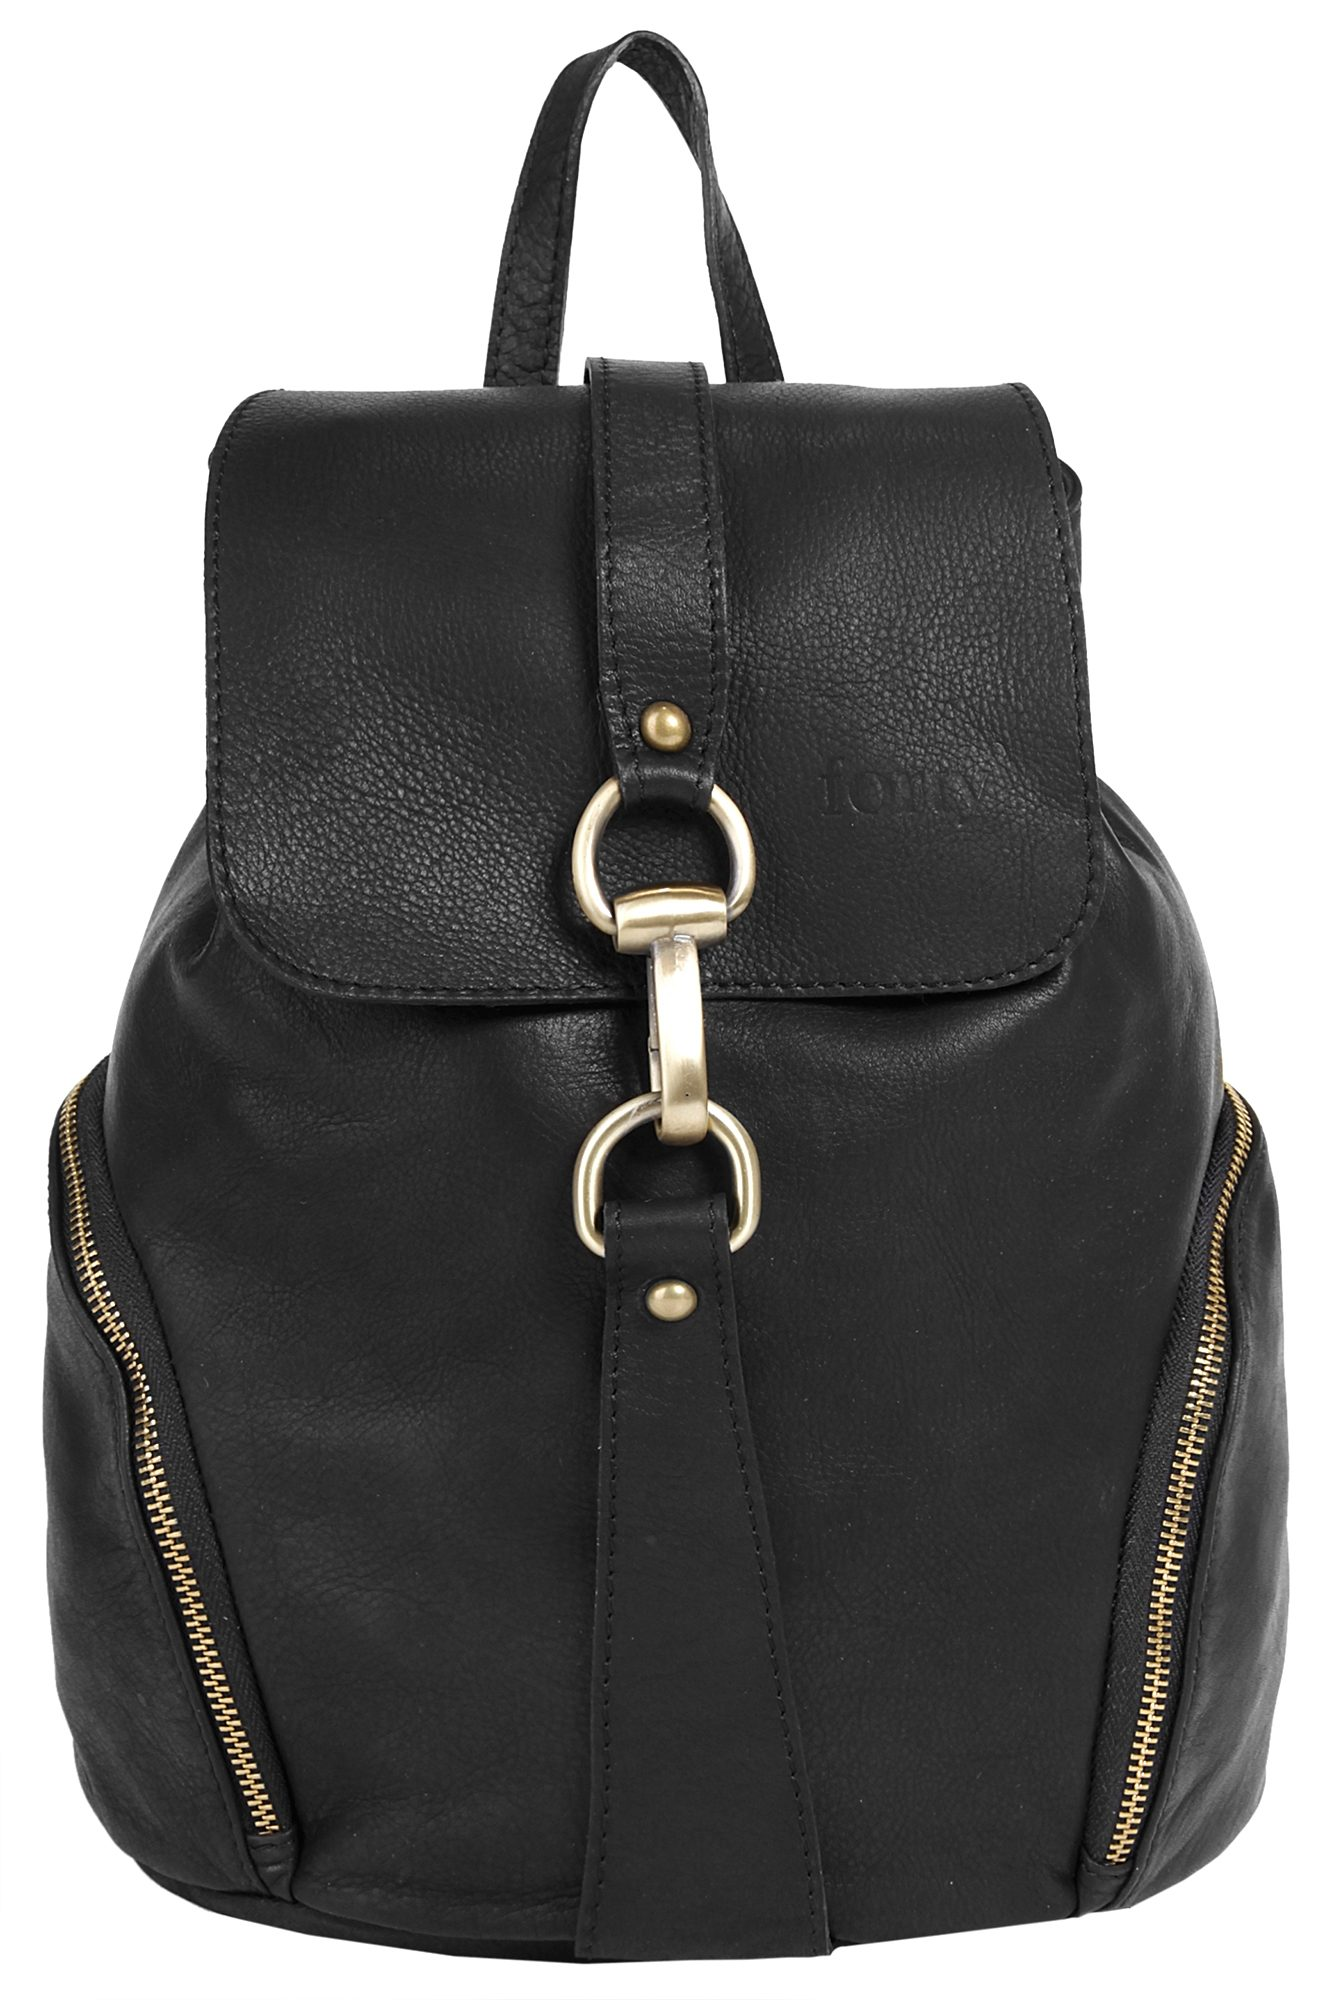 Forty degrees Leder Damen Rucksack